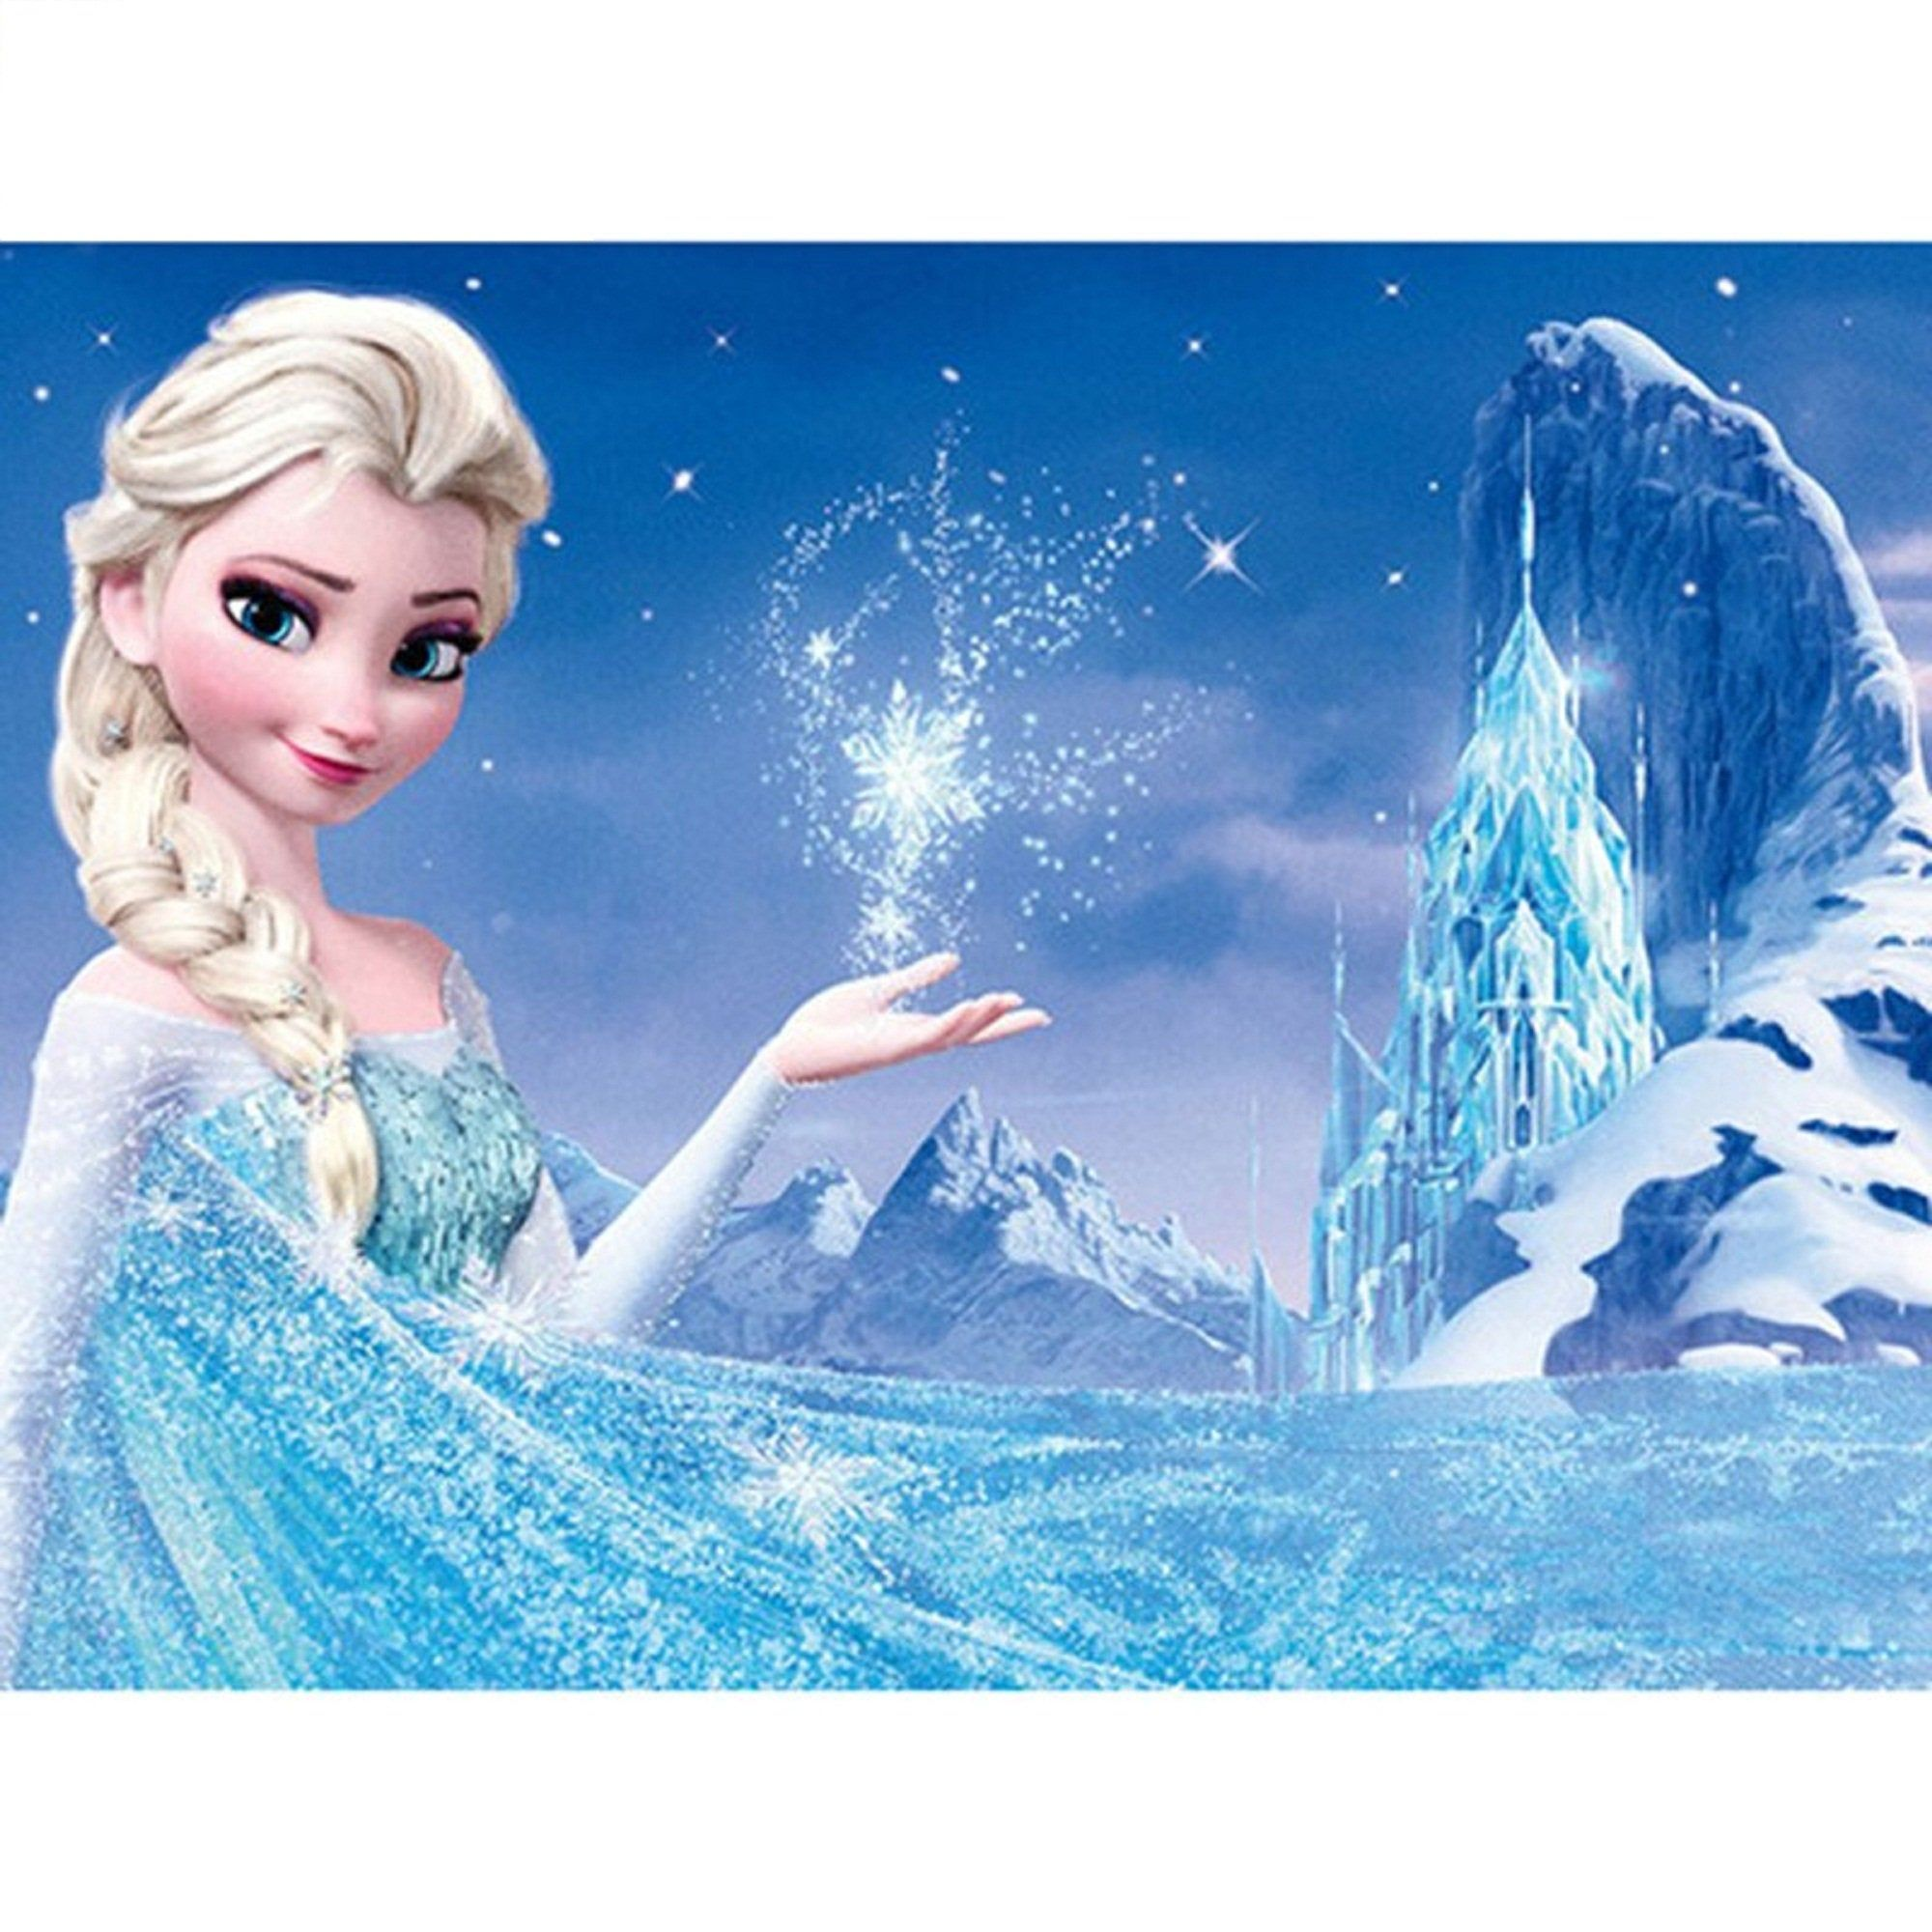 Disney Diamond Painting Snow Princess Full Square Drill Diamond Embroidery Cross Stitch Kits Ideias De Fotos Fotos Estampas